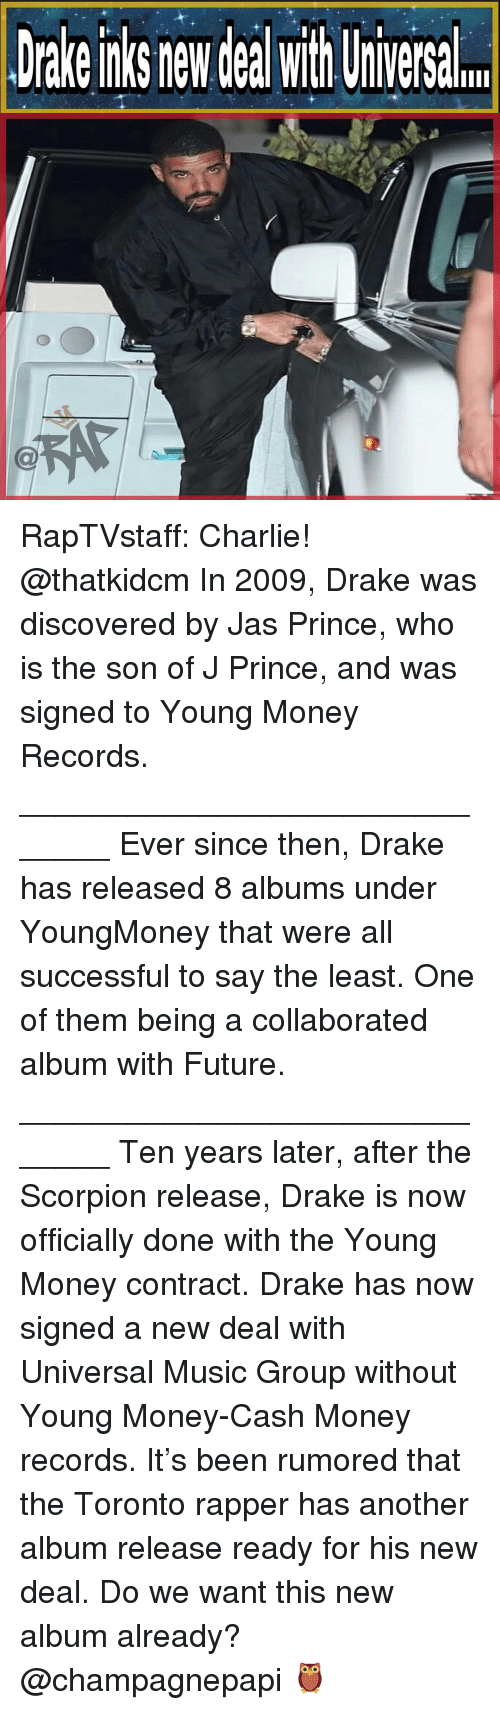 Charlie, Drake, and Future: Drake nks new deal with Uiversal RapTVstaff: Charlie! @thatkidcm In 2009, Drake was discovered by Jas Prince, who is the son of J Prince, and was signed to Young Money Records. ______________________________ Ever since then, Drake has released 8 albums under YoungMoney that were all successful to say the least. One of them being a collaborated album with Future. ______________________________ Ten years later, after the Scorpion release, Drake is now officially done with the Young Money contract. Drake has now signed a new deal with Universal Music Group without Young Money-Cash Money records. It's been rumored that the Toronto rapper has another album release ready for his new deal. Do we want this new album already? @champagnepapi 🦉